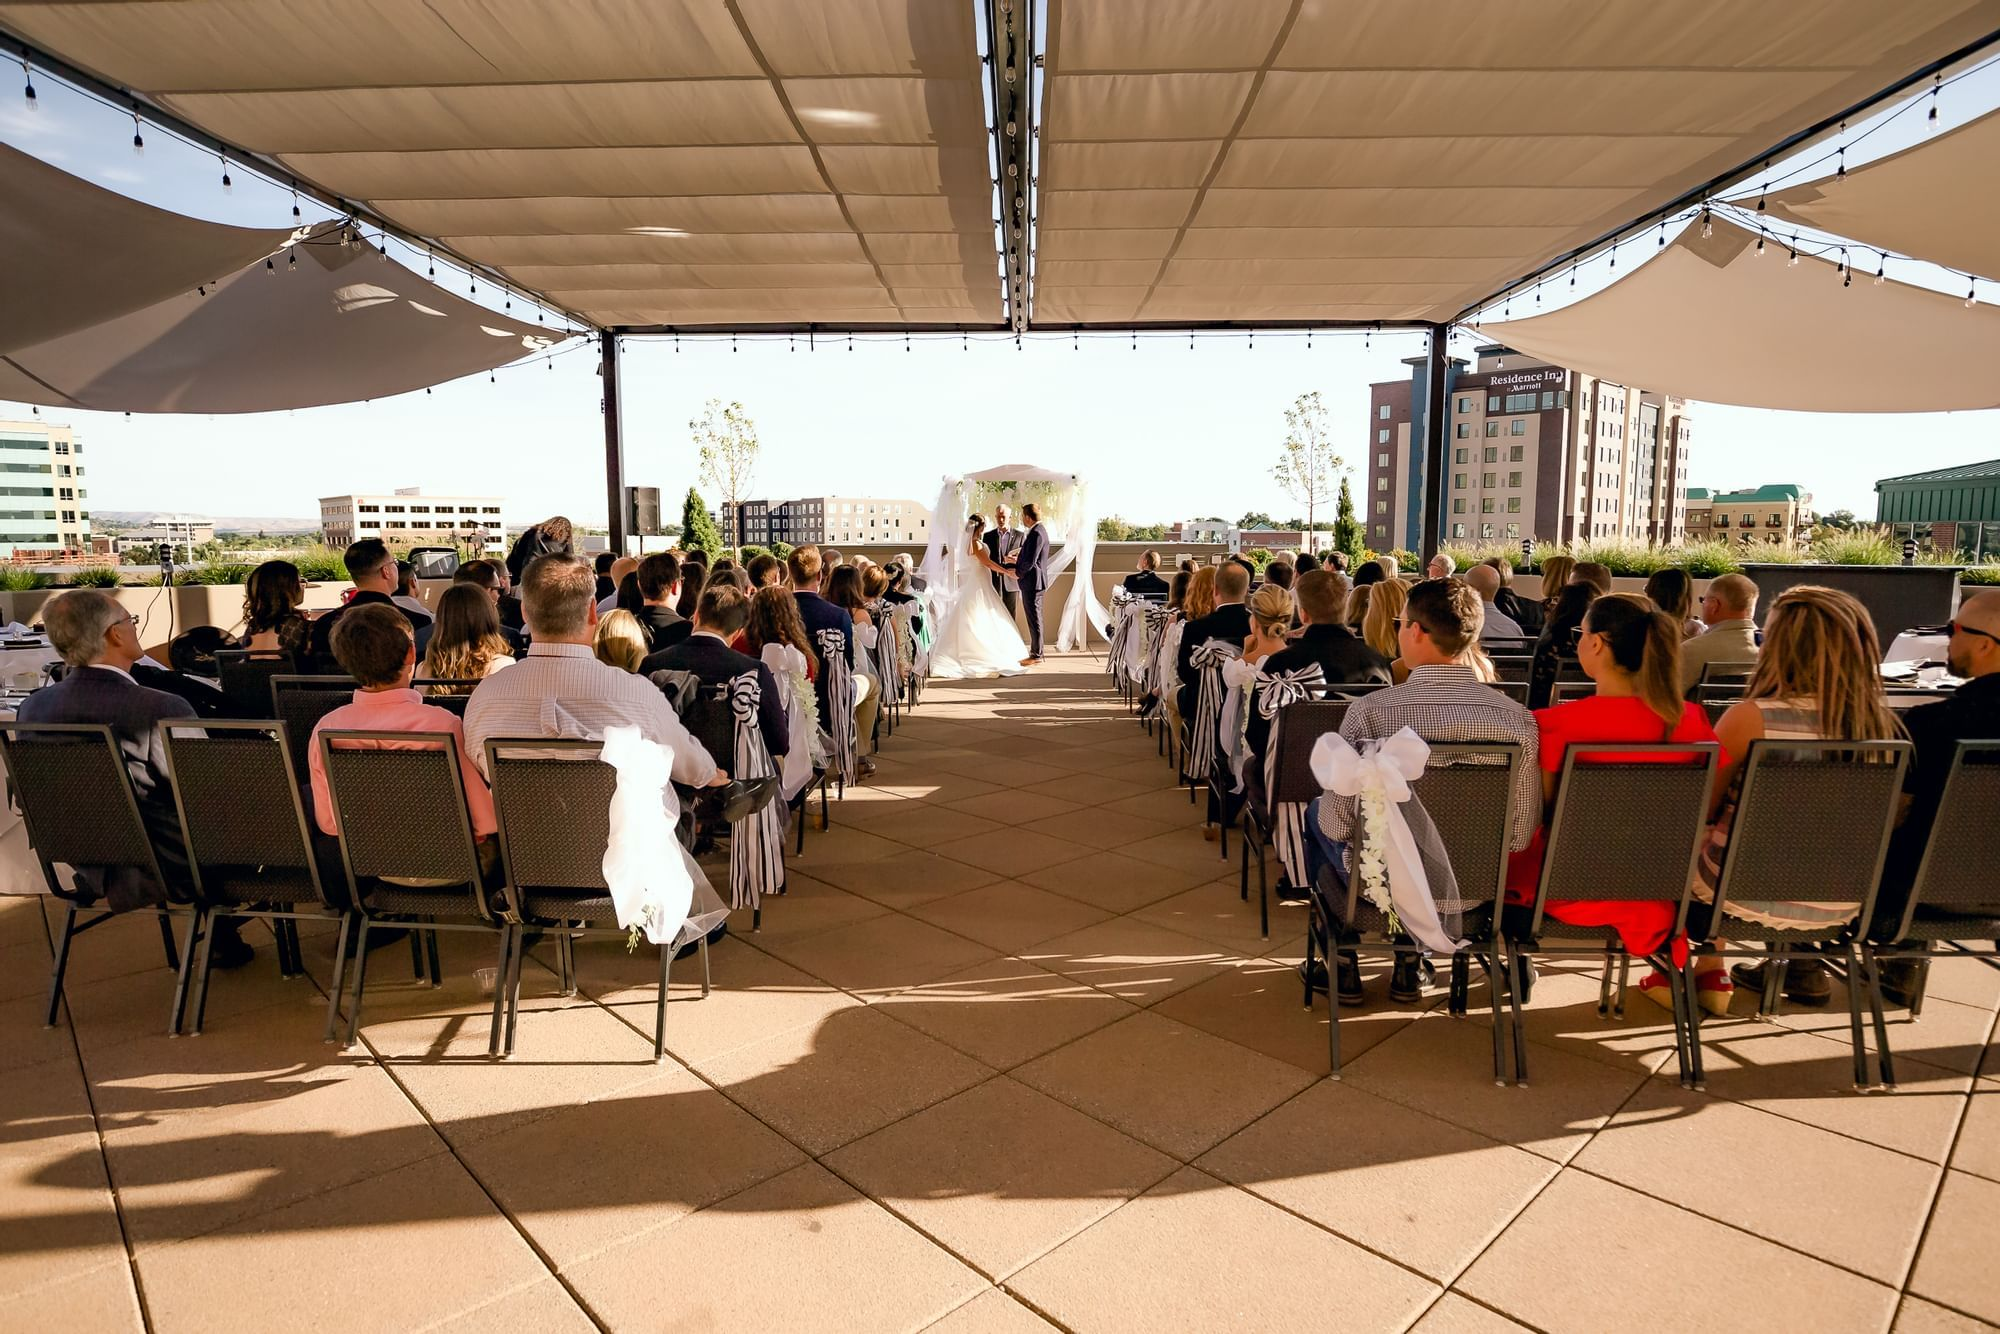 rows of people at a wedding ceremony